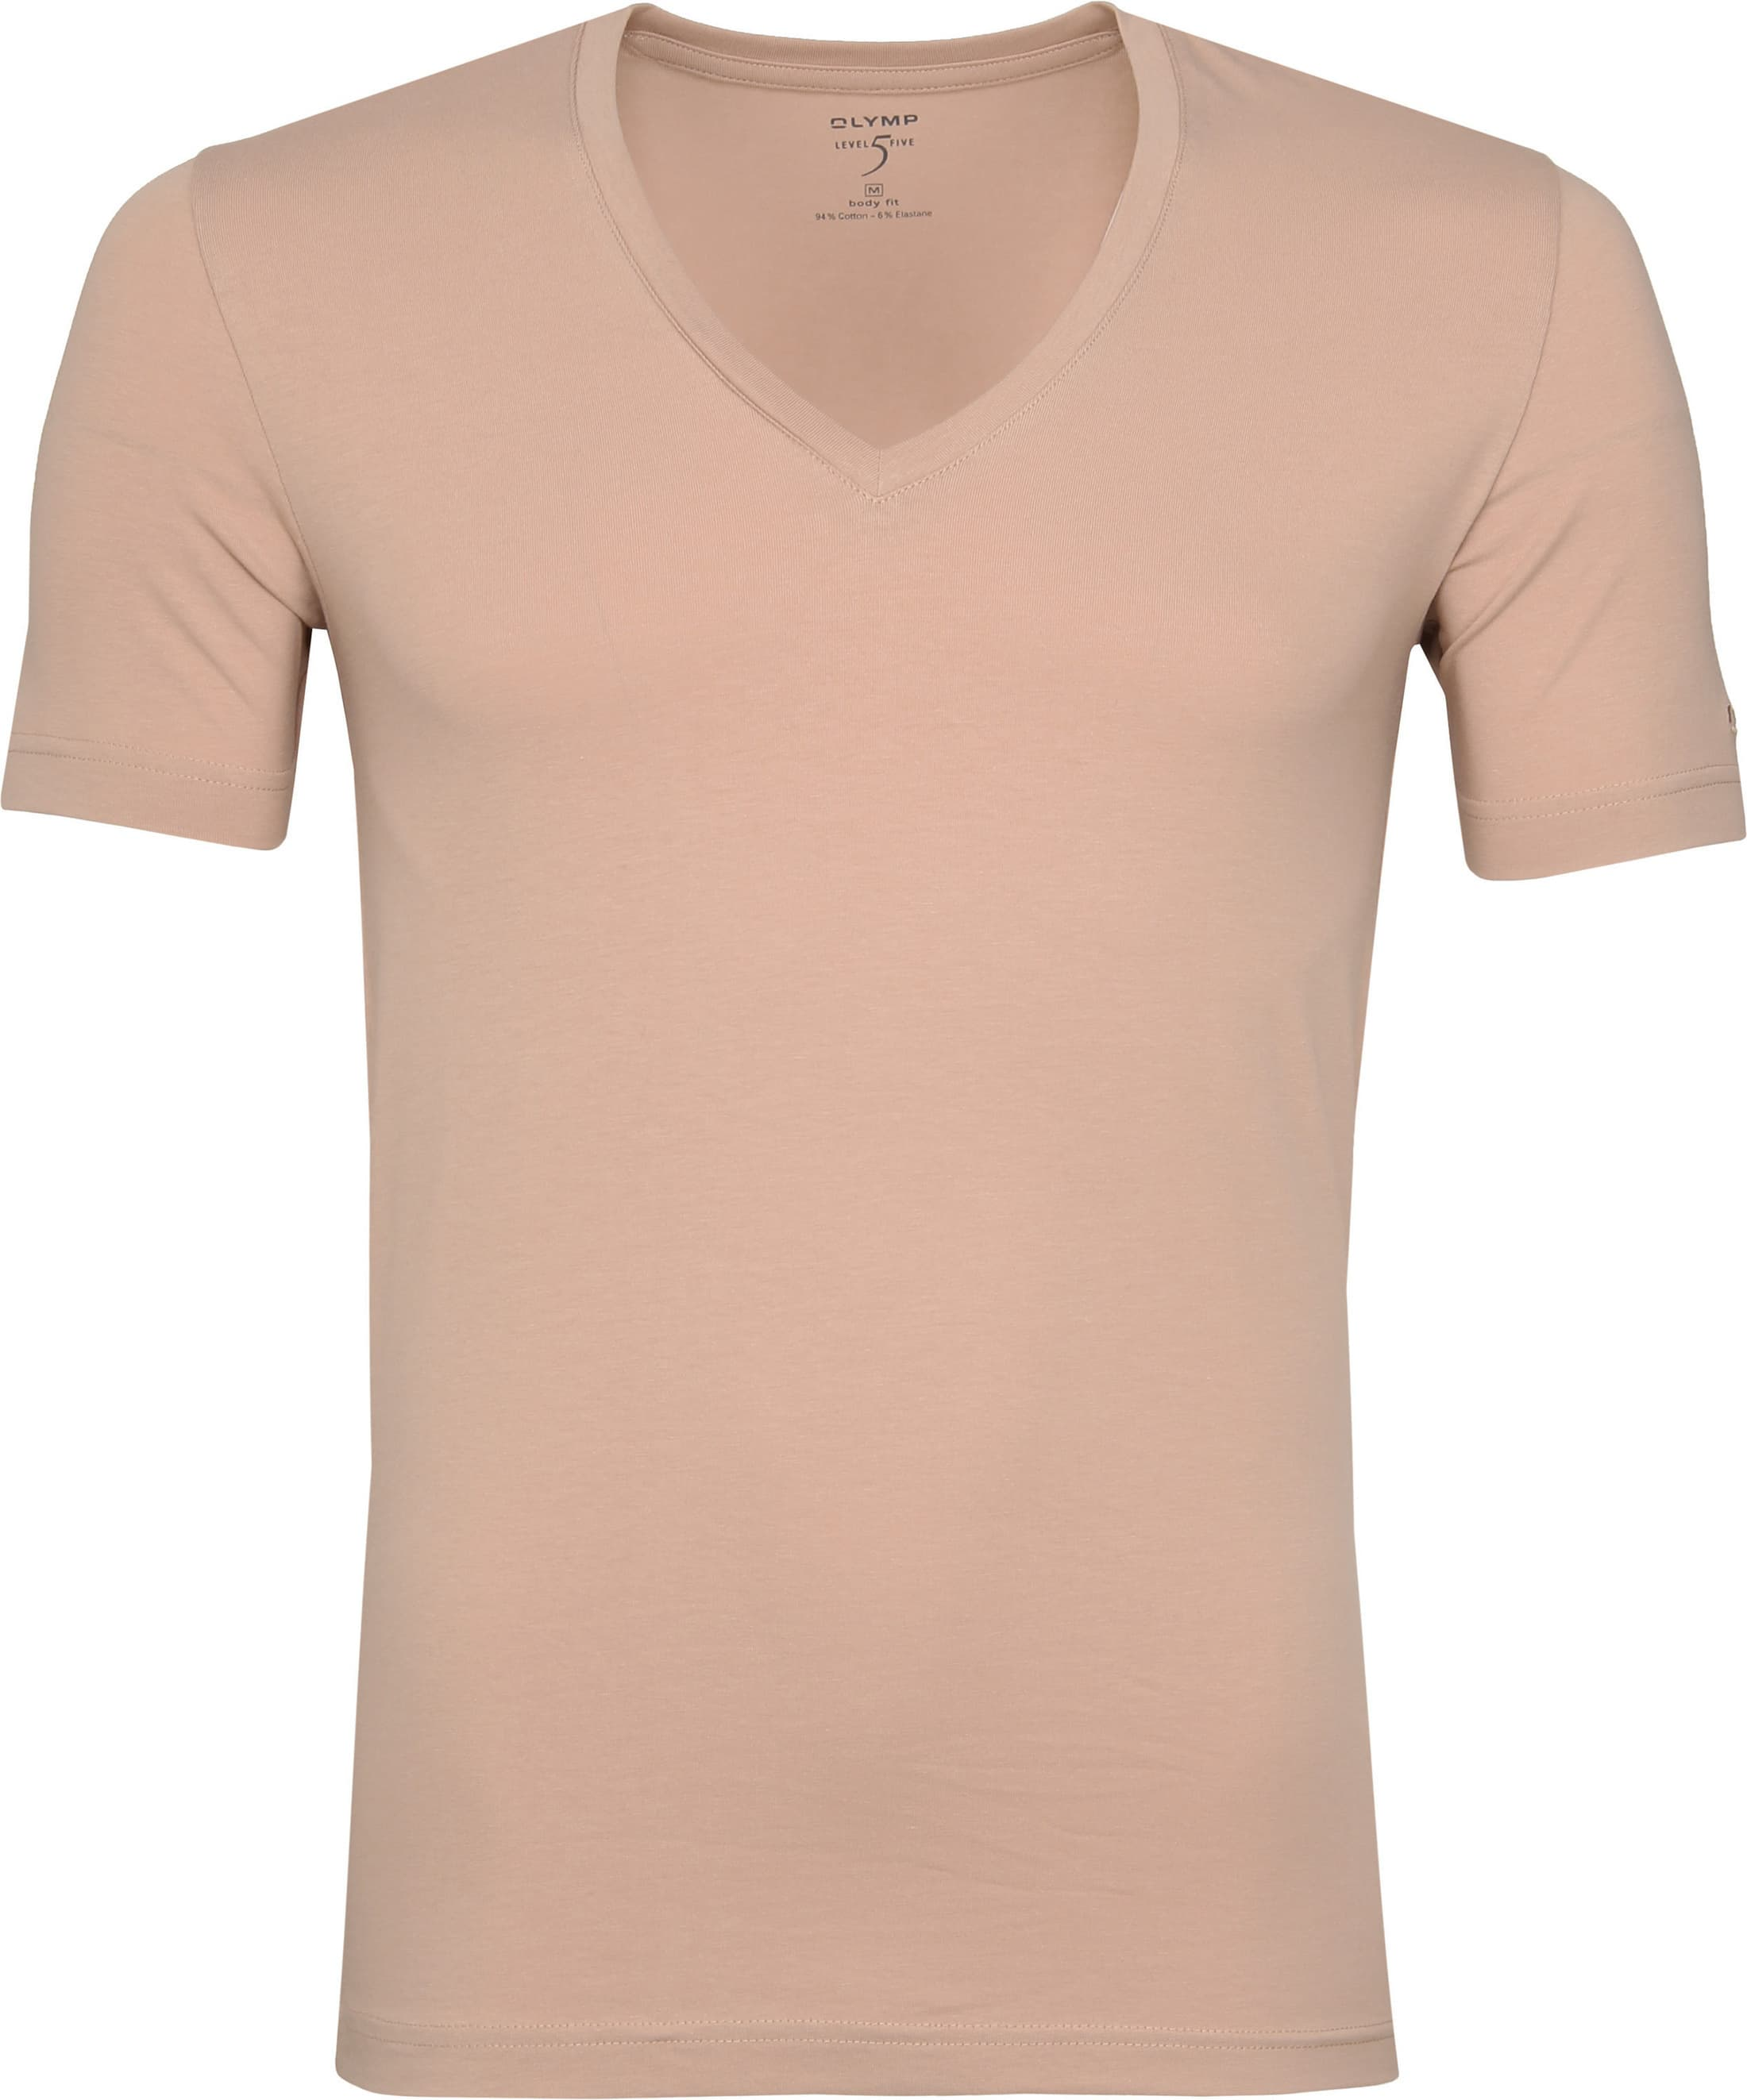 Olymp T shirt V Neck Nude 080412 order online | Suitable